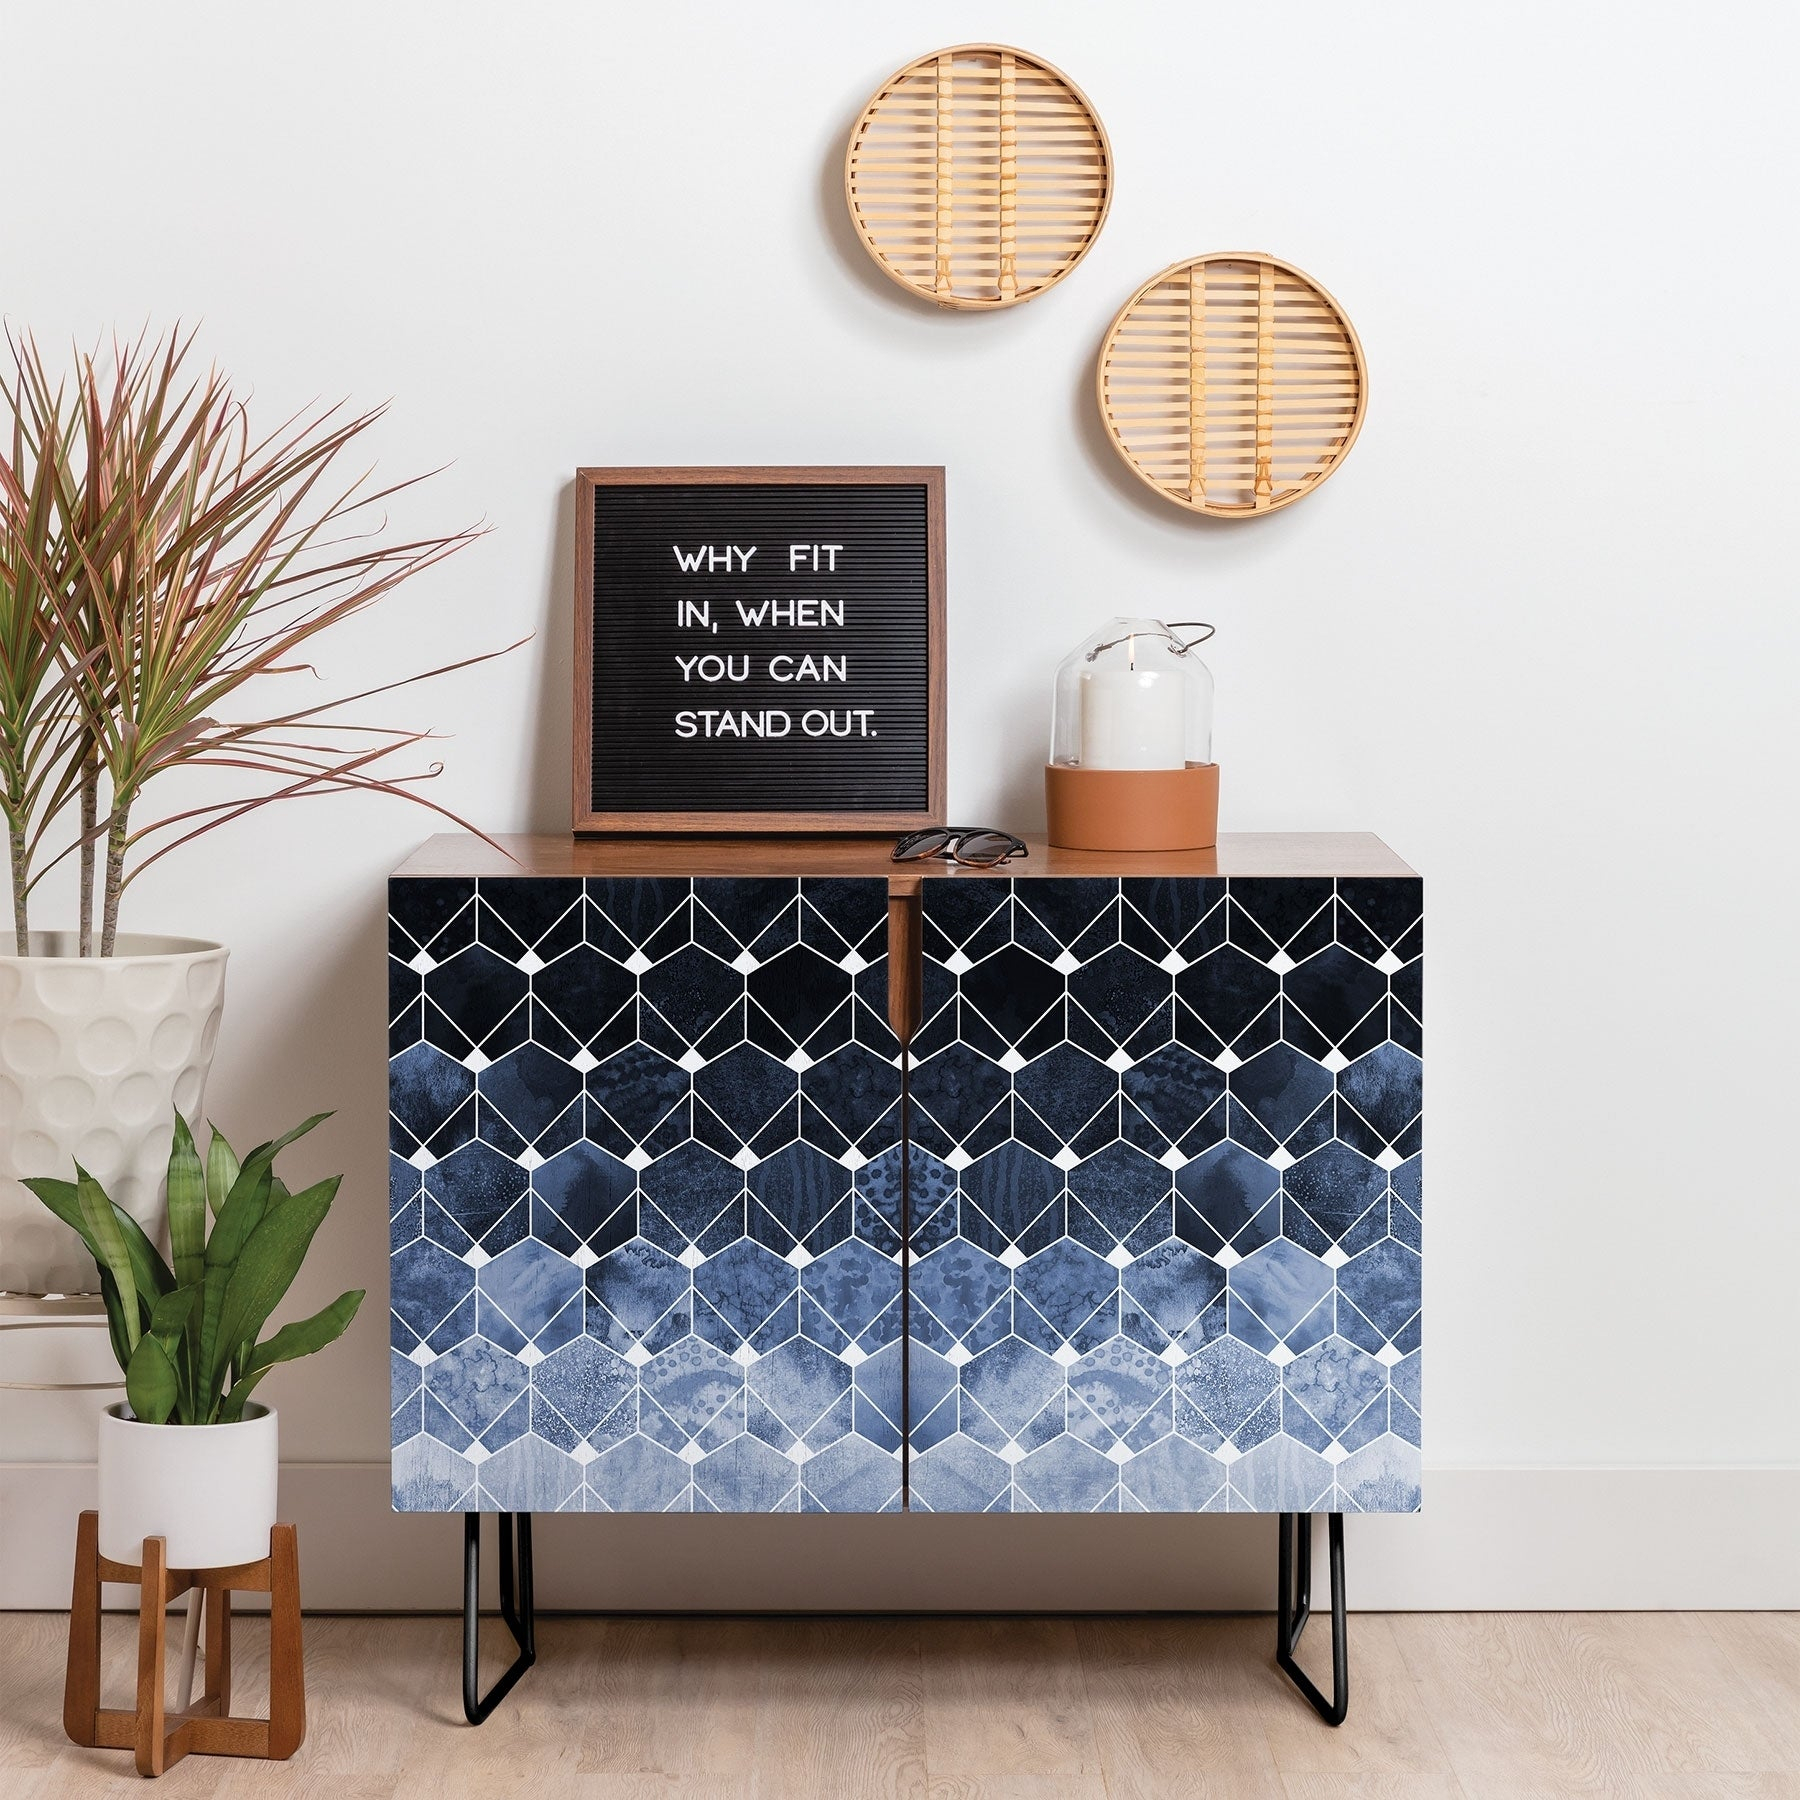 Deny Designs Blue Hexagons And Diamonds Credenza (Birch Or Walnut, 2 Leg Options) Pertaining To Line Geo Credenzas (View 6 of 30)